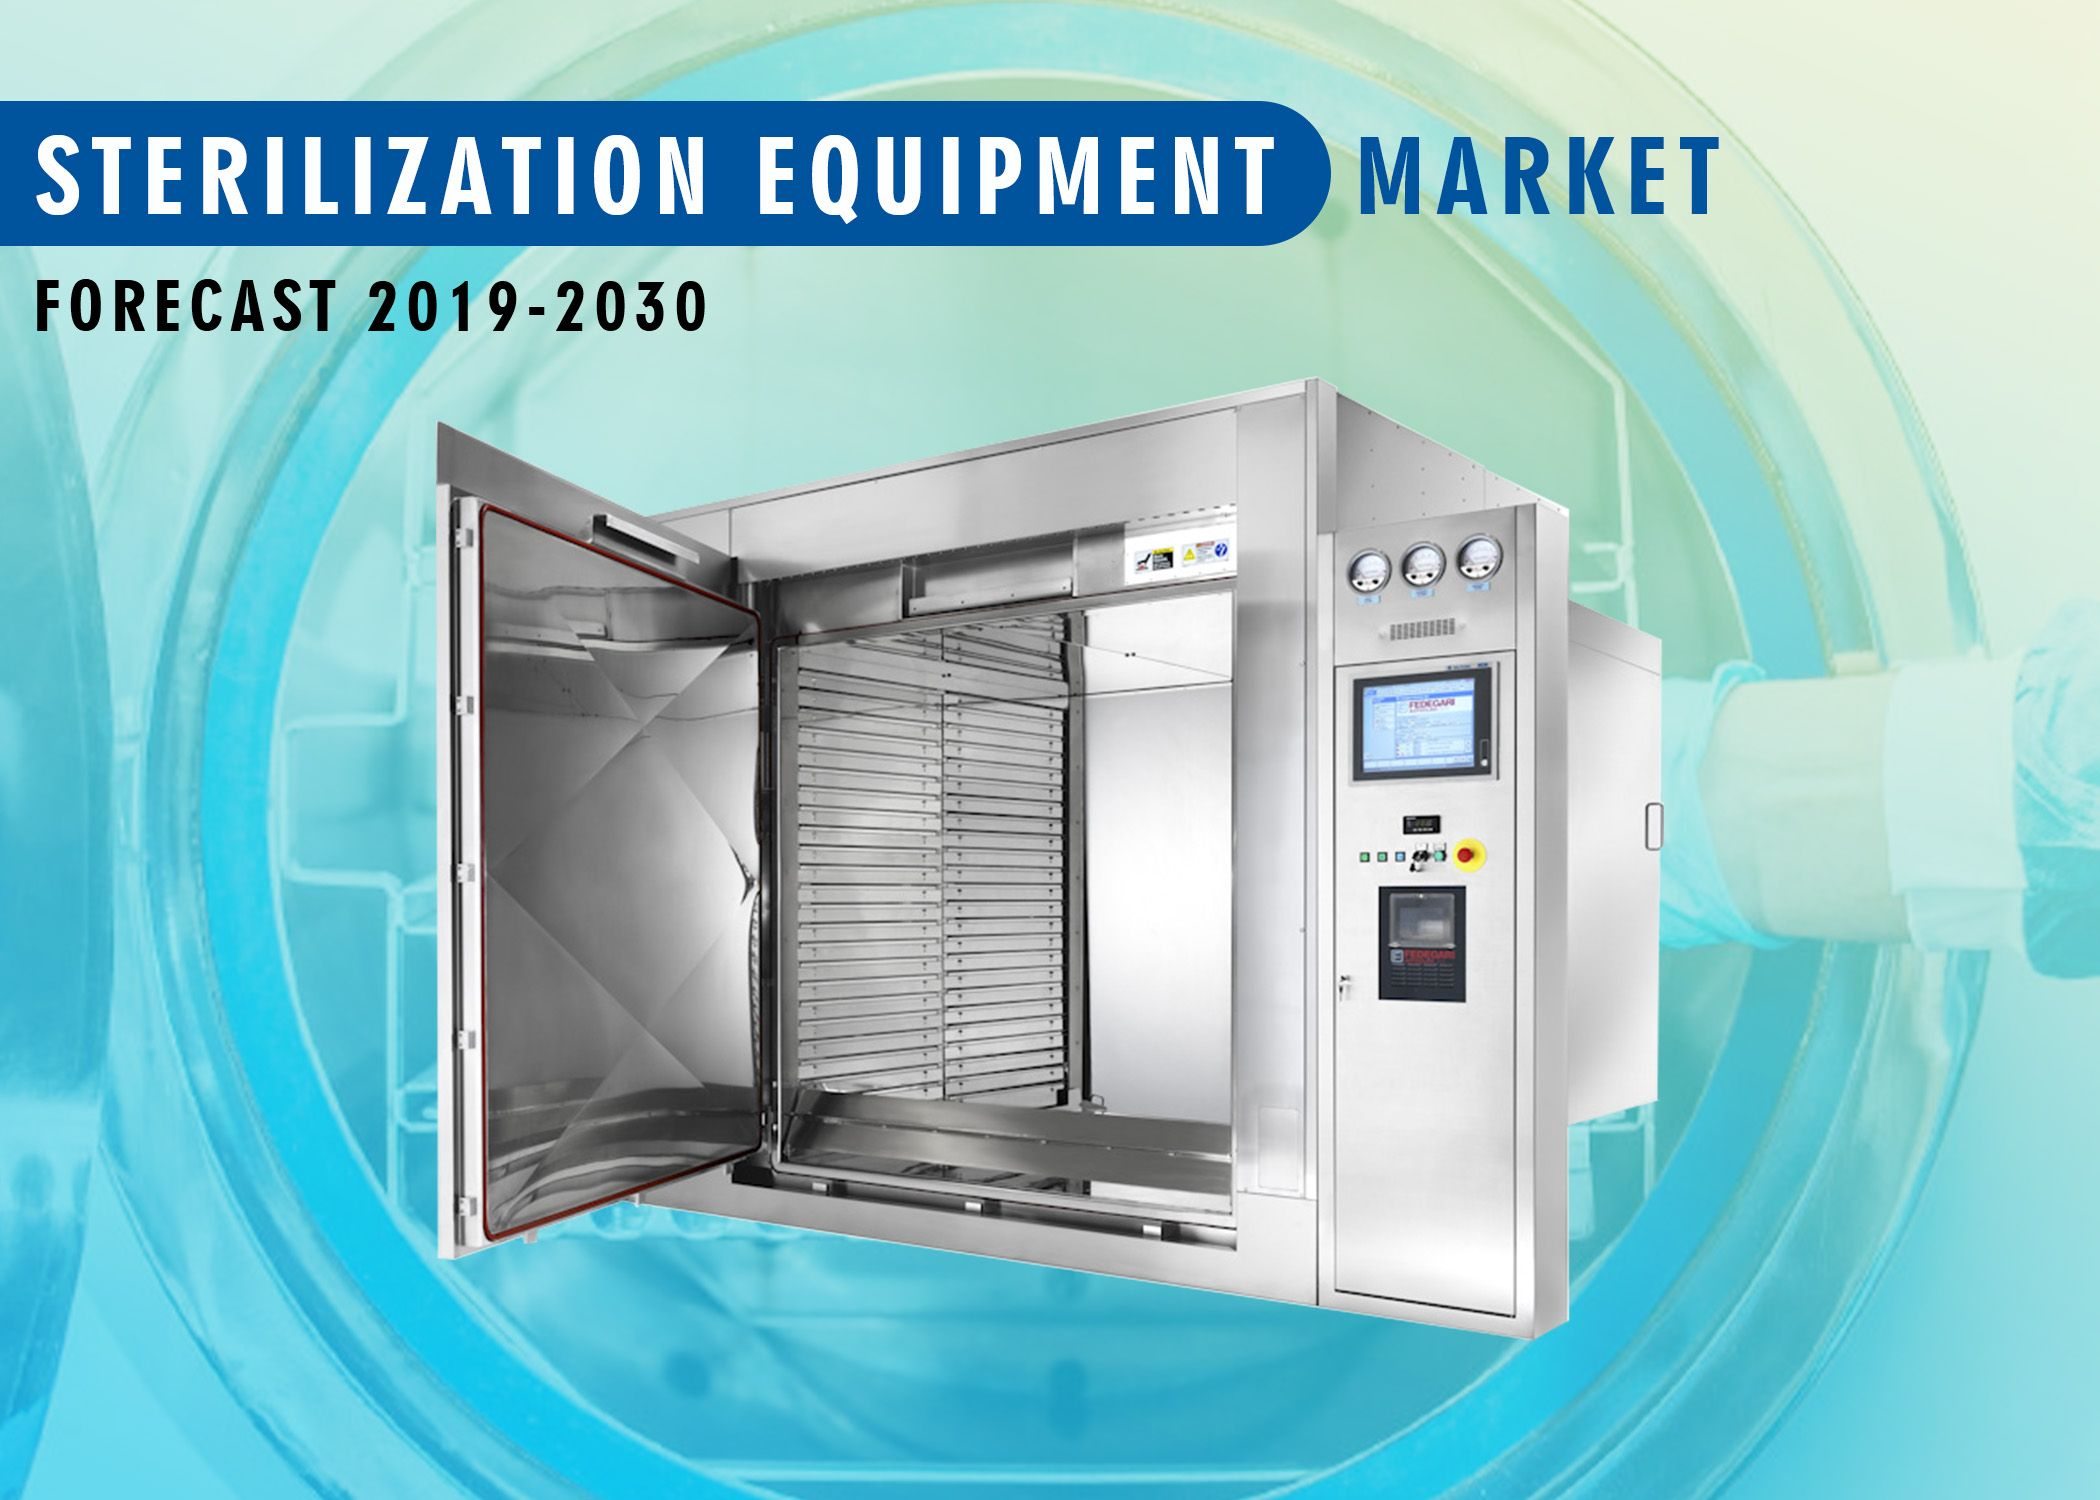 Sterilization Equipment Market By Product And Service Sterilization Consumables And Accessories Sterilization Instruments And Sterilization Services End Use Infographic Marketing Marketing Medical Tourism